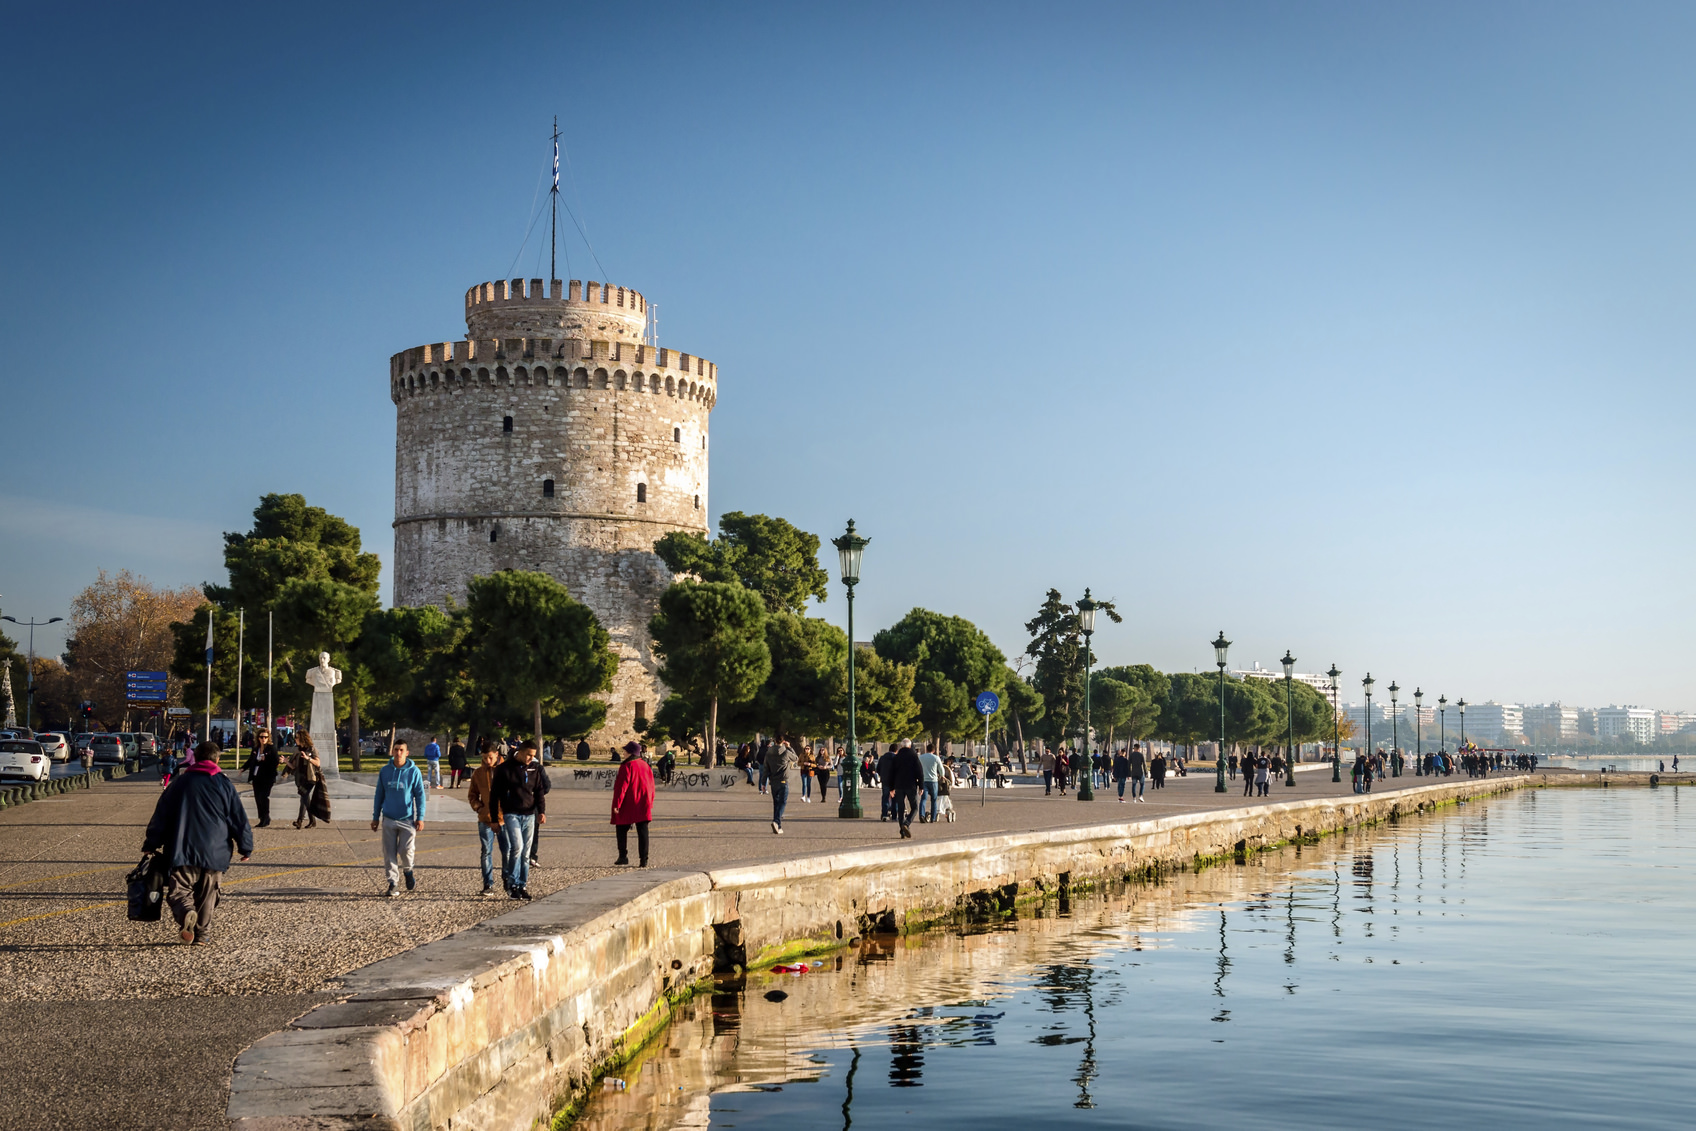 Thessaloniki, Greece - December 24, 2015: People walking on the coast in Thessaloniki next to the white tower which once guarded the eastern end of the city's sea walls